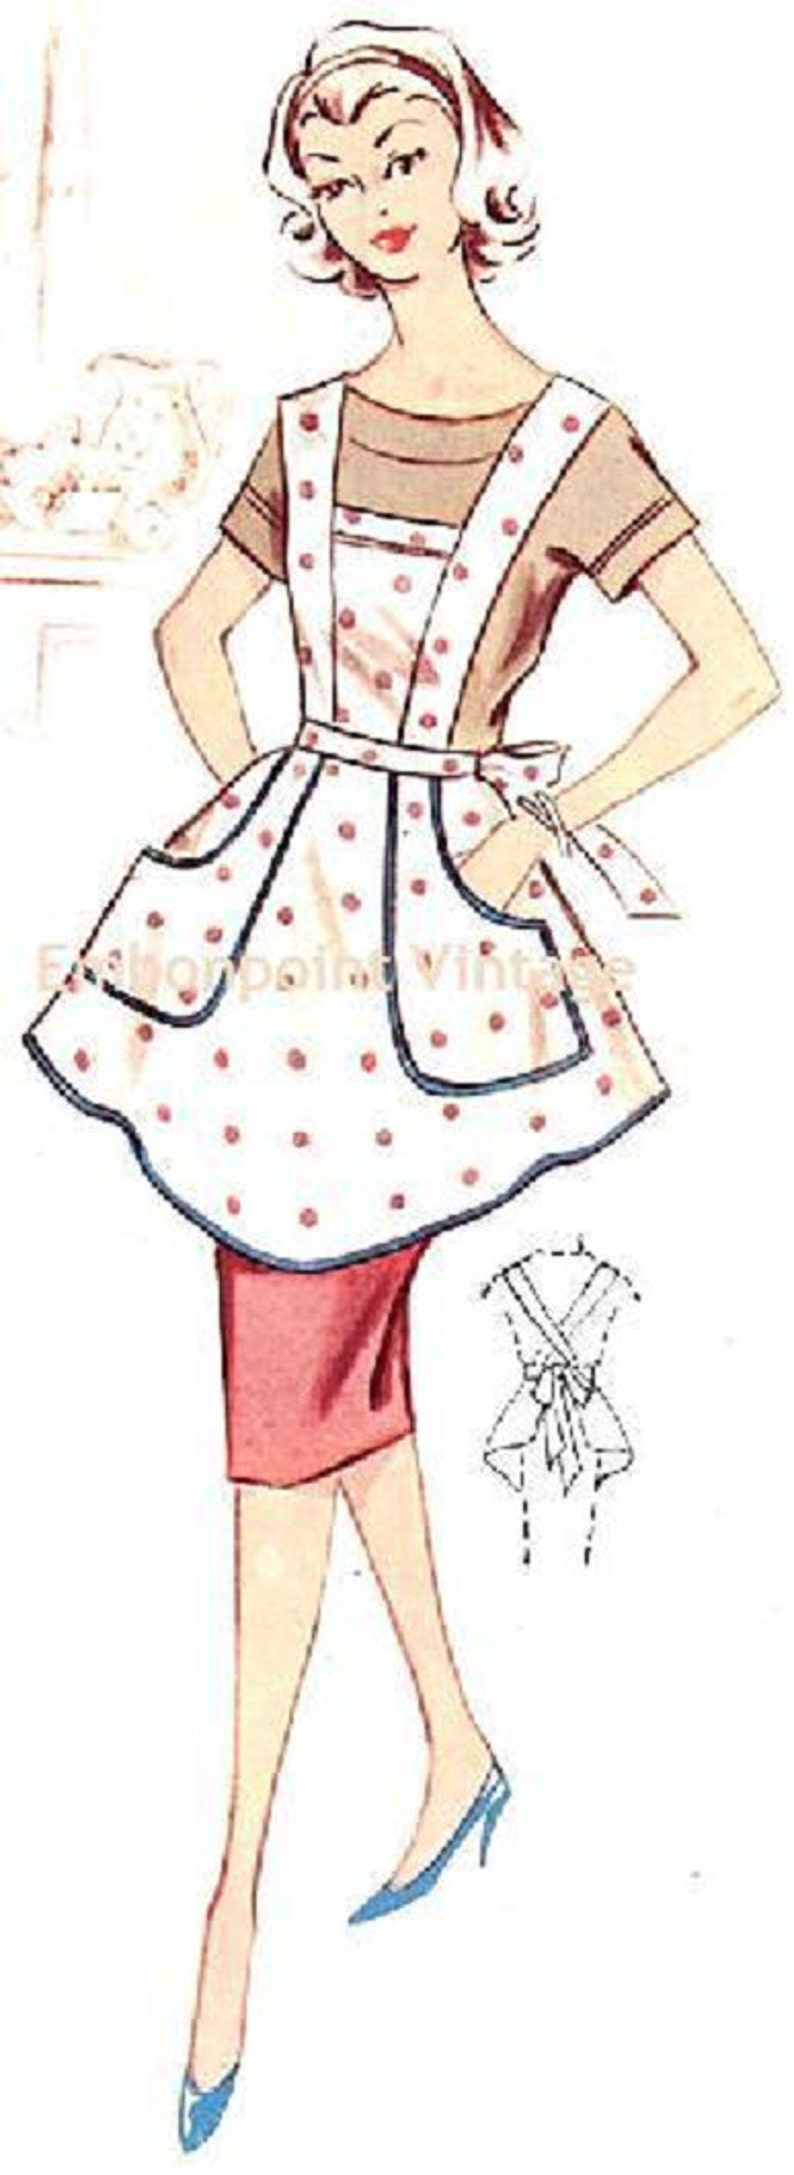 10 Things to Do with Vintage Aprons Plus Size (or any size) Vintage 1950s Apron Pattern - PDF - Pattern No 111 Jill 50s Sewing Patterns Instant Download Rockabilly $8.35 AT vintagedancer.com